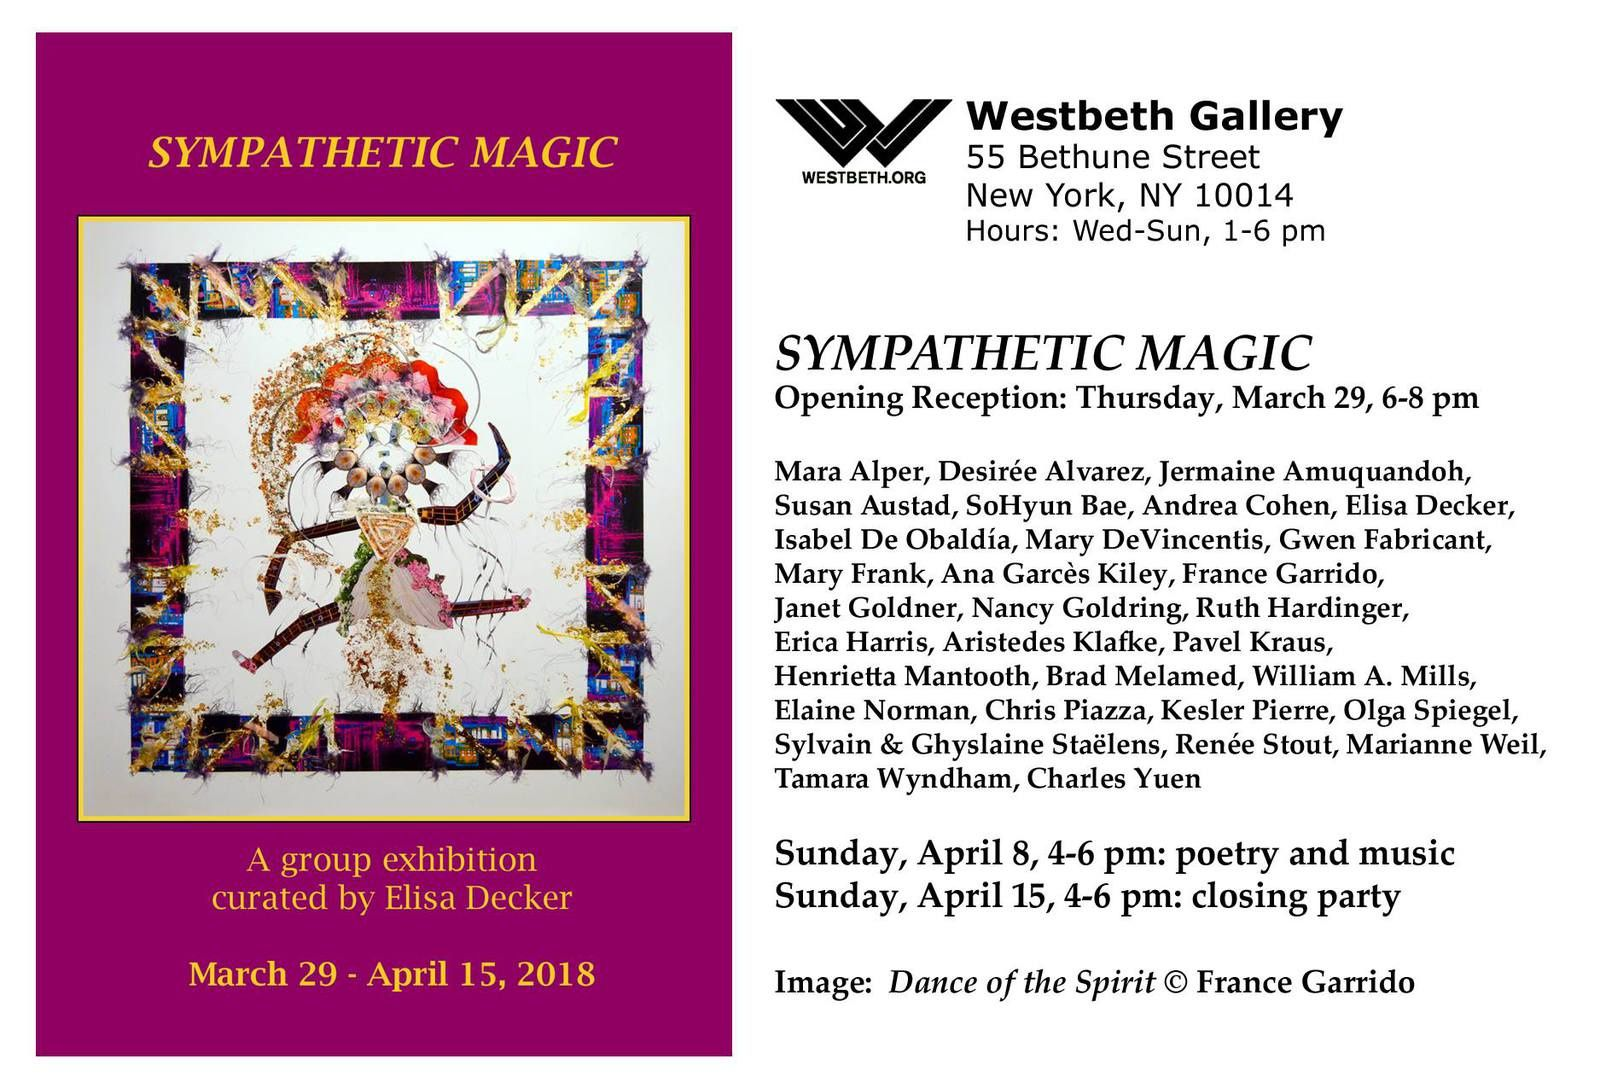 Exposition Sympathetic Magic / Galerie Westbeth / New York